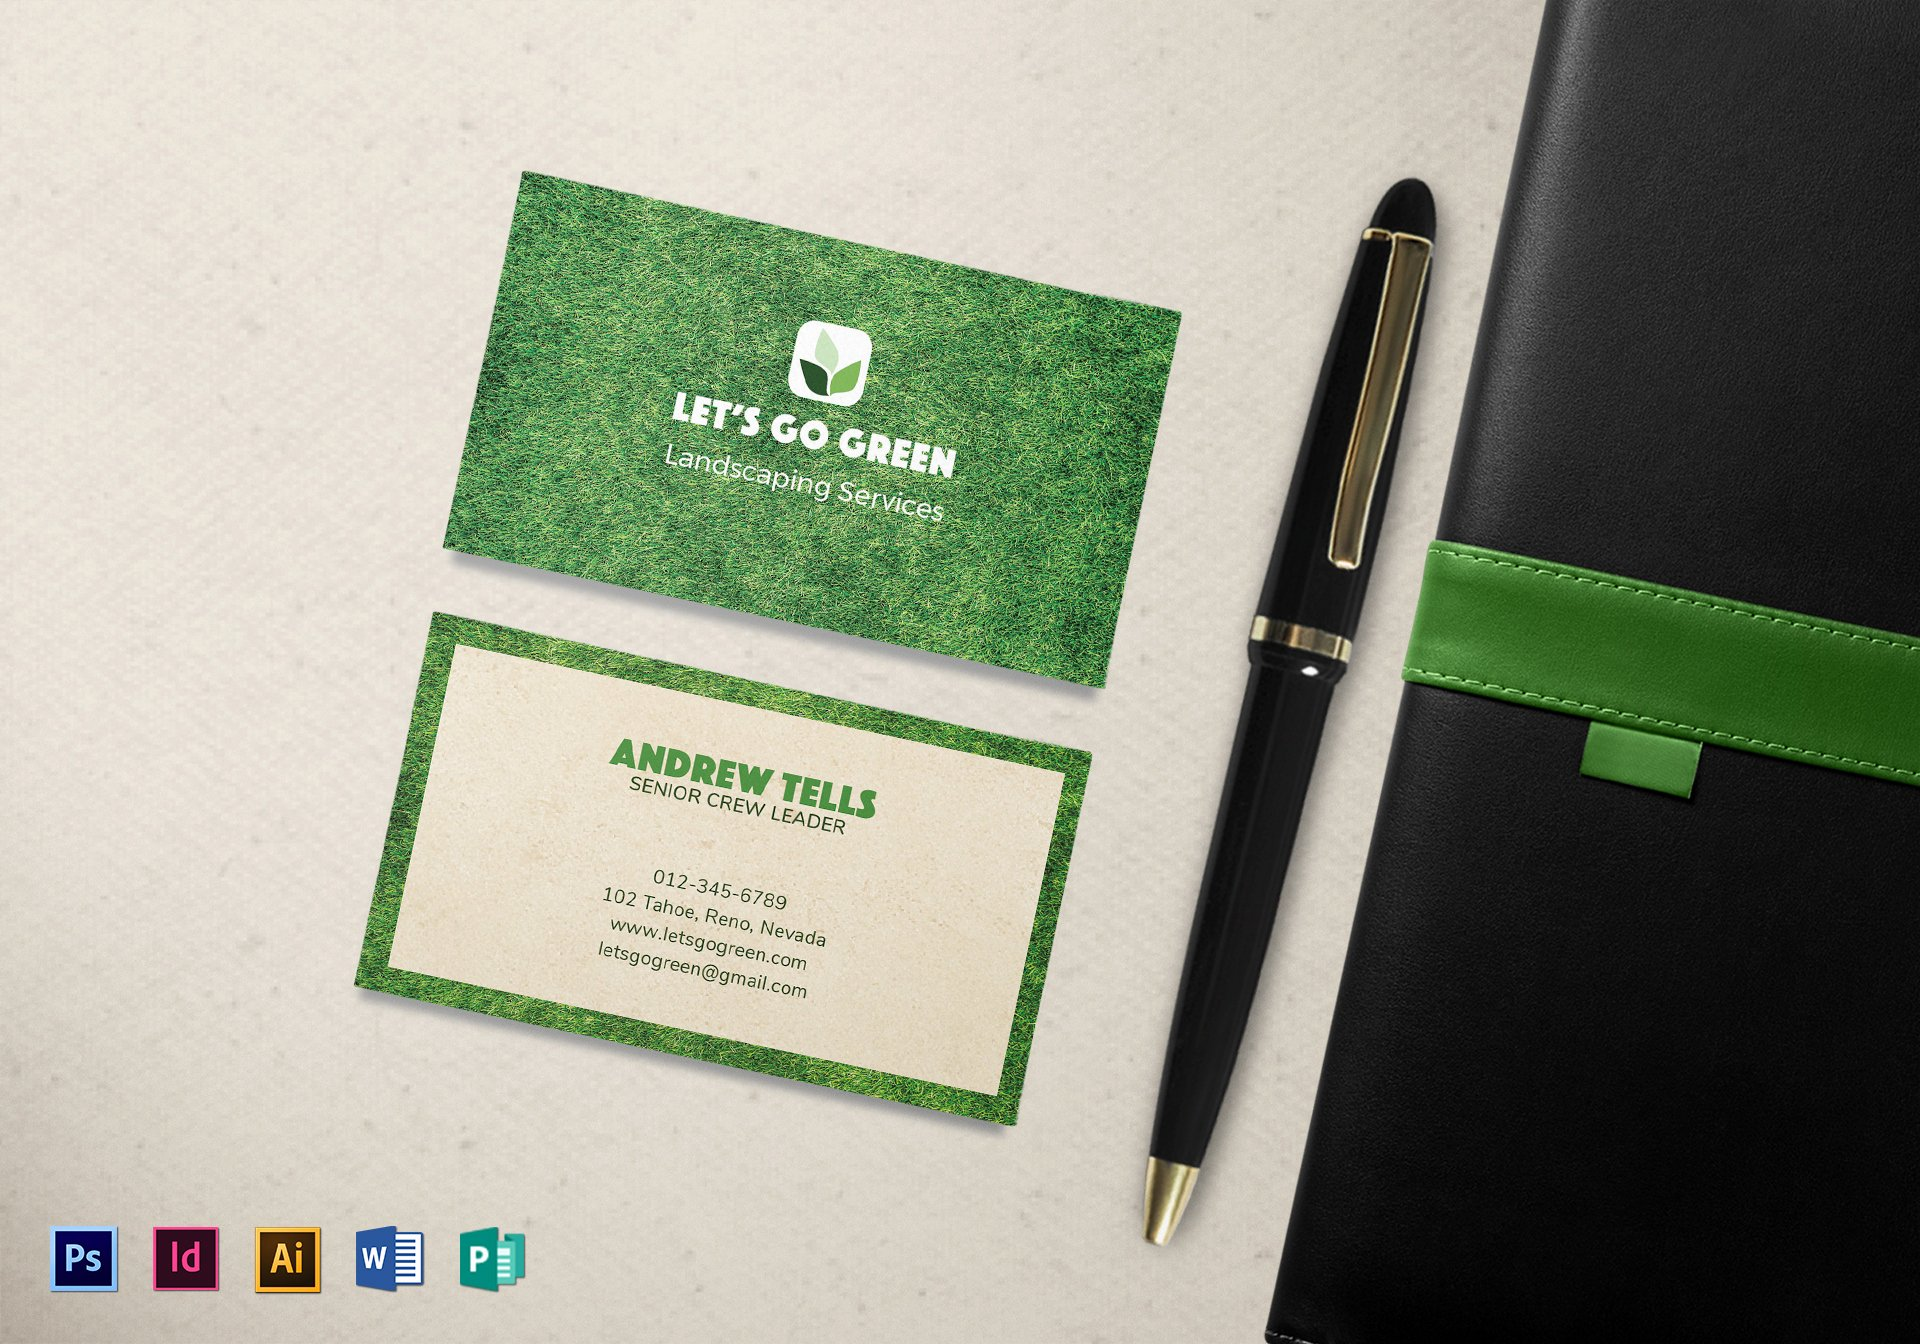 Landscaping Business Cards Templates Free Elegant Landscaping Business Card Template In Psd Word Publisher